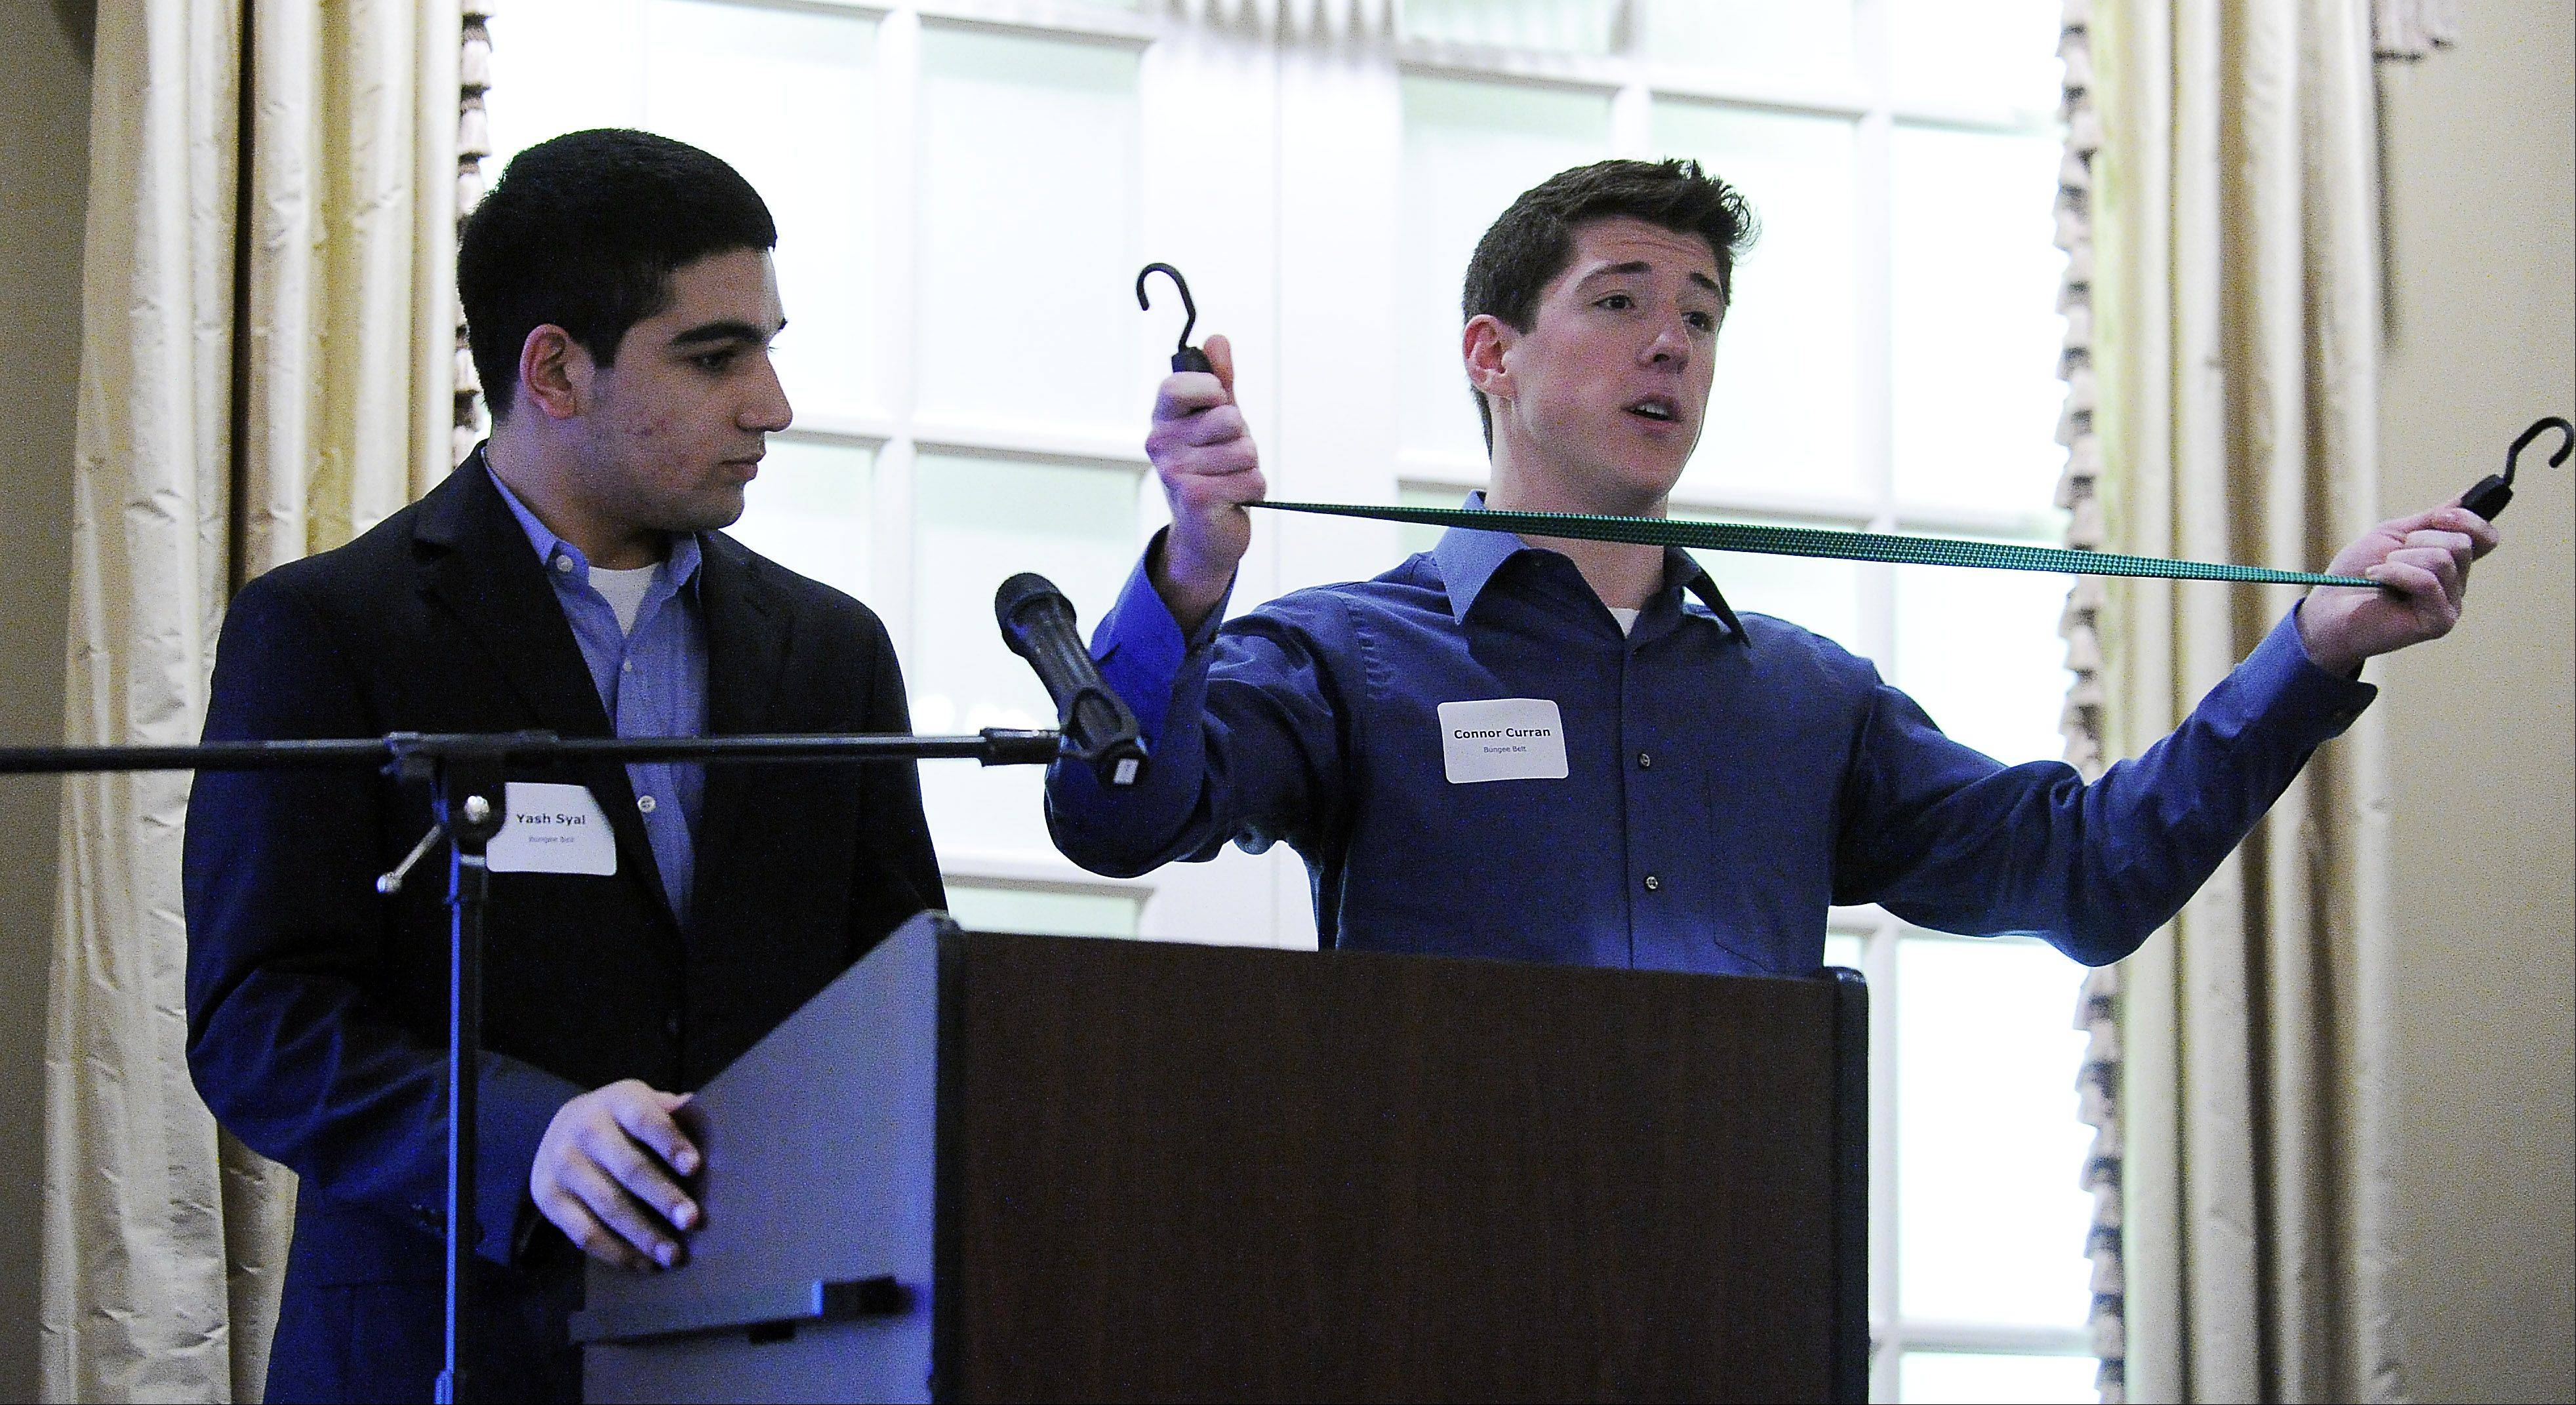 Yash Syal, 16, of Palatine High School, left, and his business partner Connor Curran, 17, of St. Viator High School demonstrate their concept for Bungee Belts at the Palatine Area Chamber of Commerce and District 211 Young Entrepreneurs Academy. They were pitching their product to potential investors.